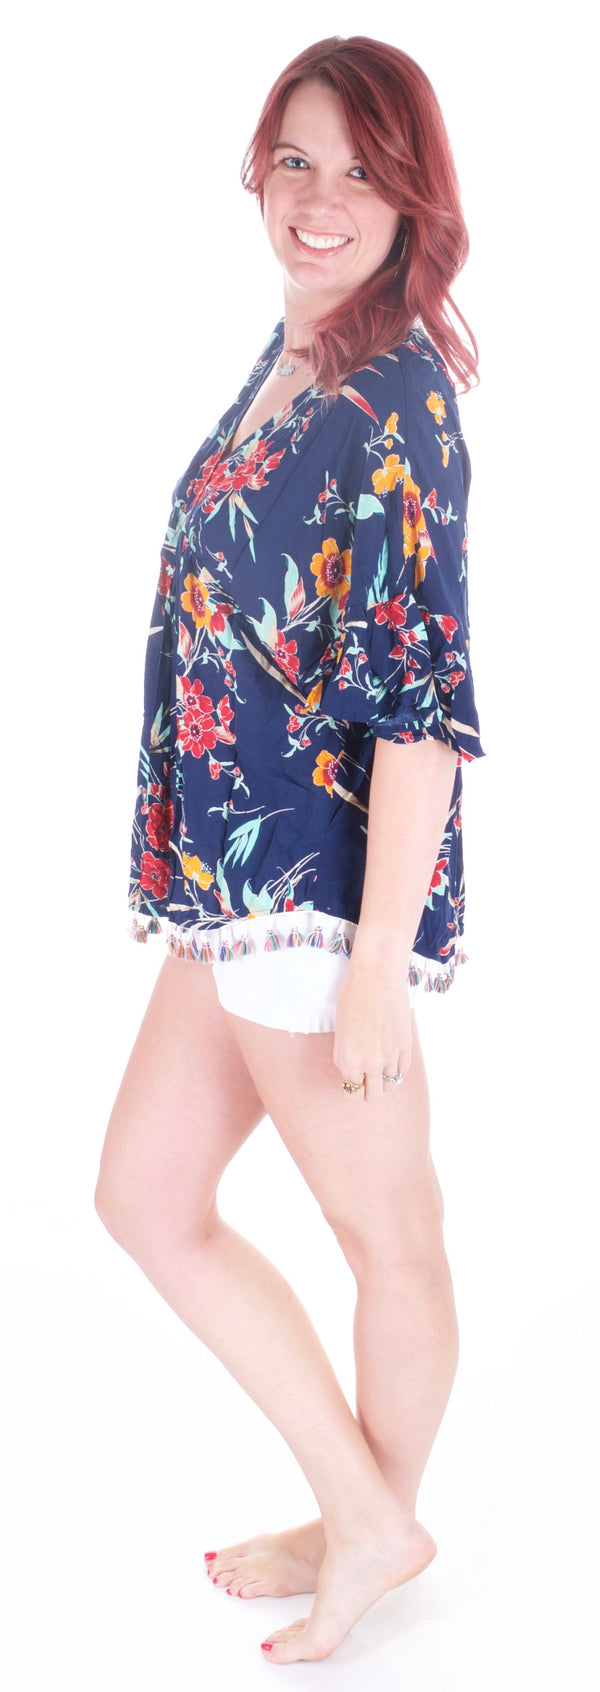 Floral and Fringe Shirt - Adventurista Boutique